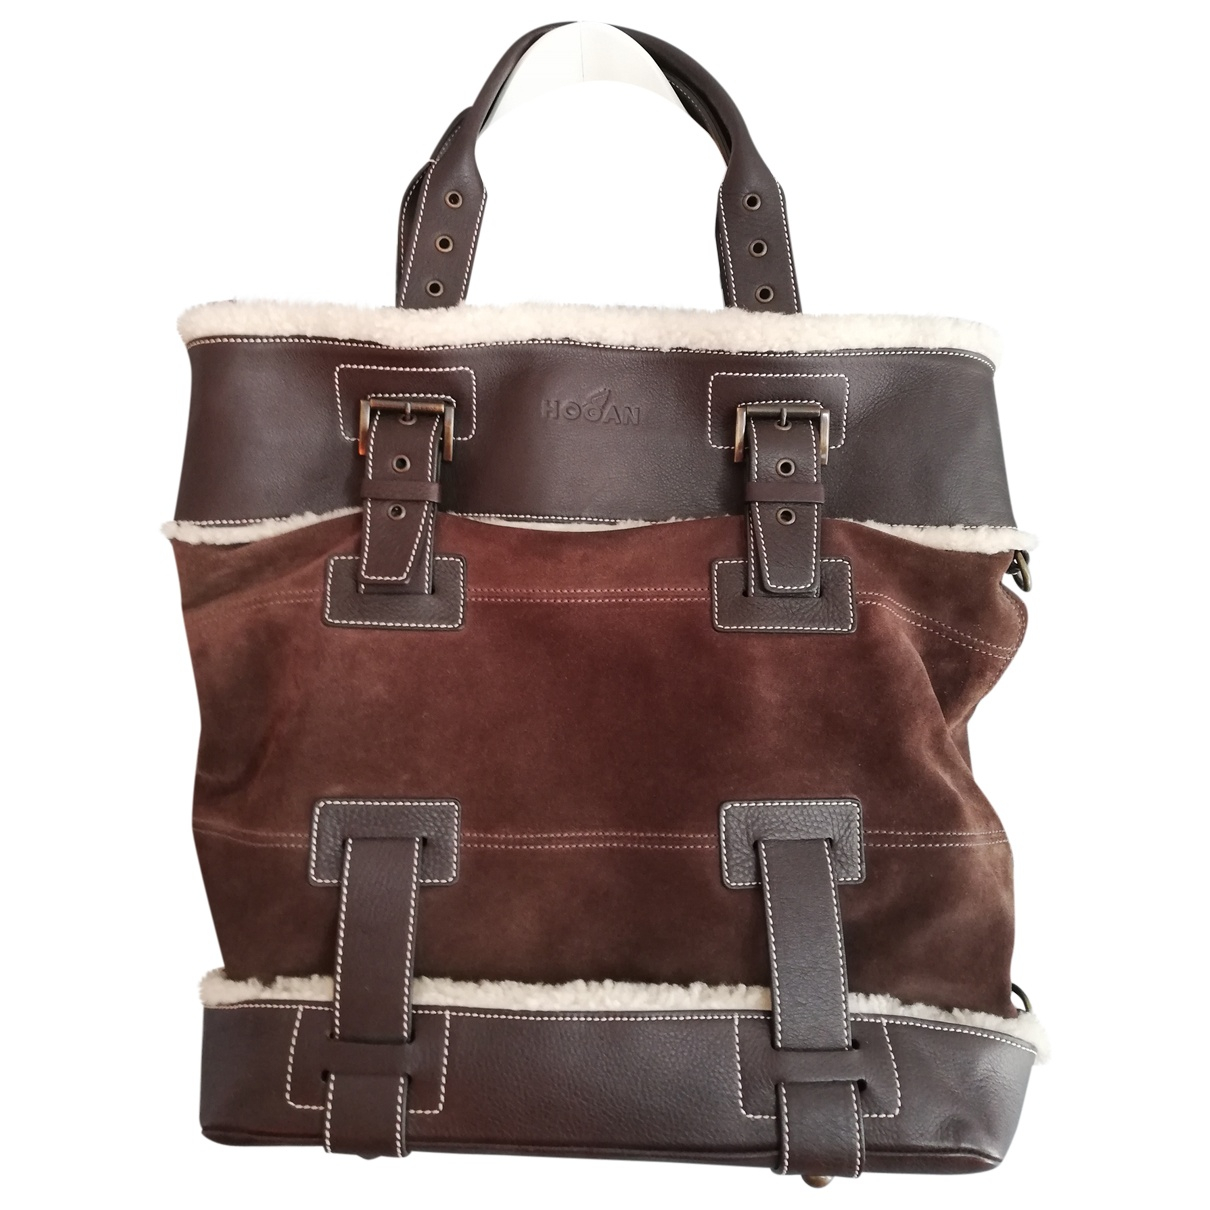 Hogan N Brown Leather handbag for Women N